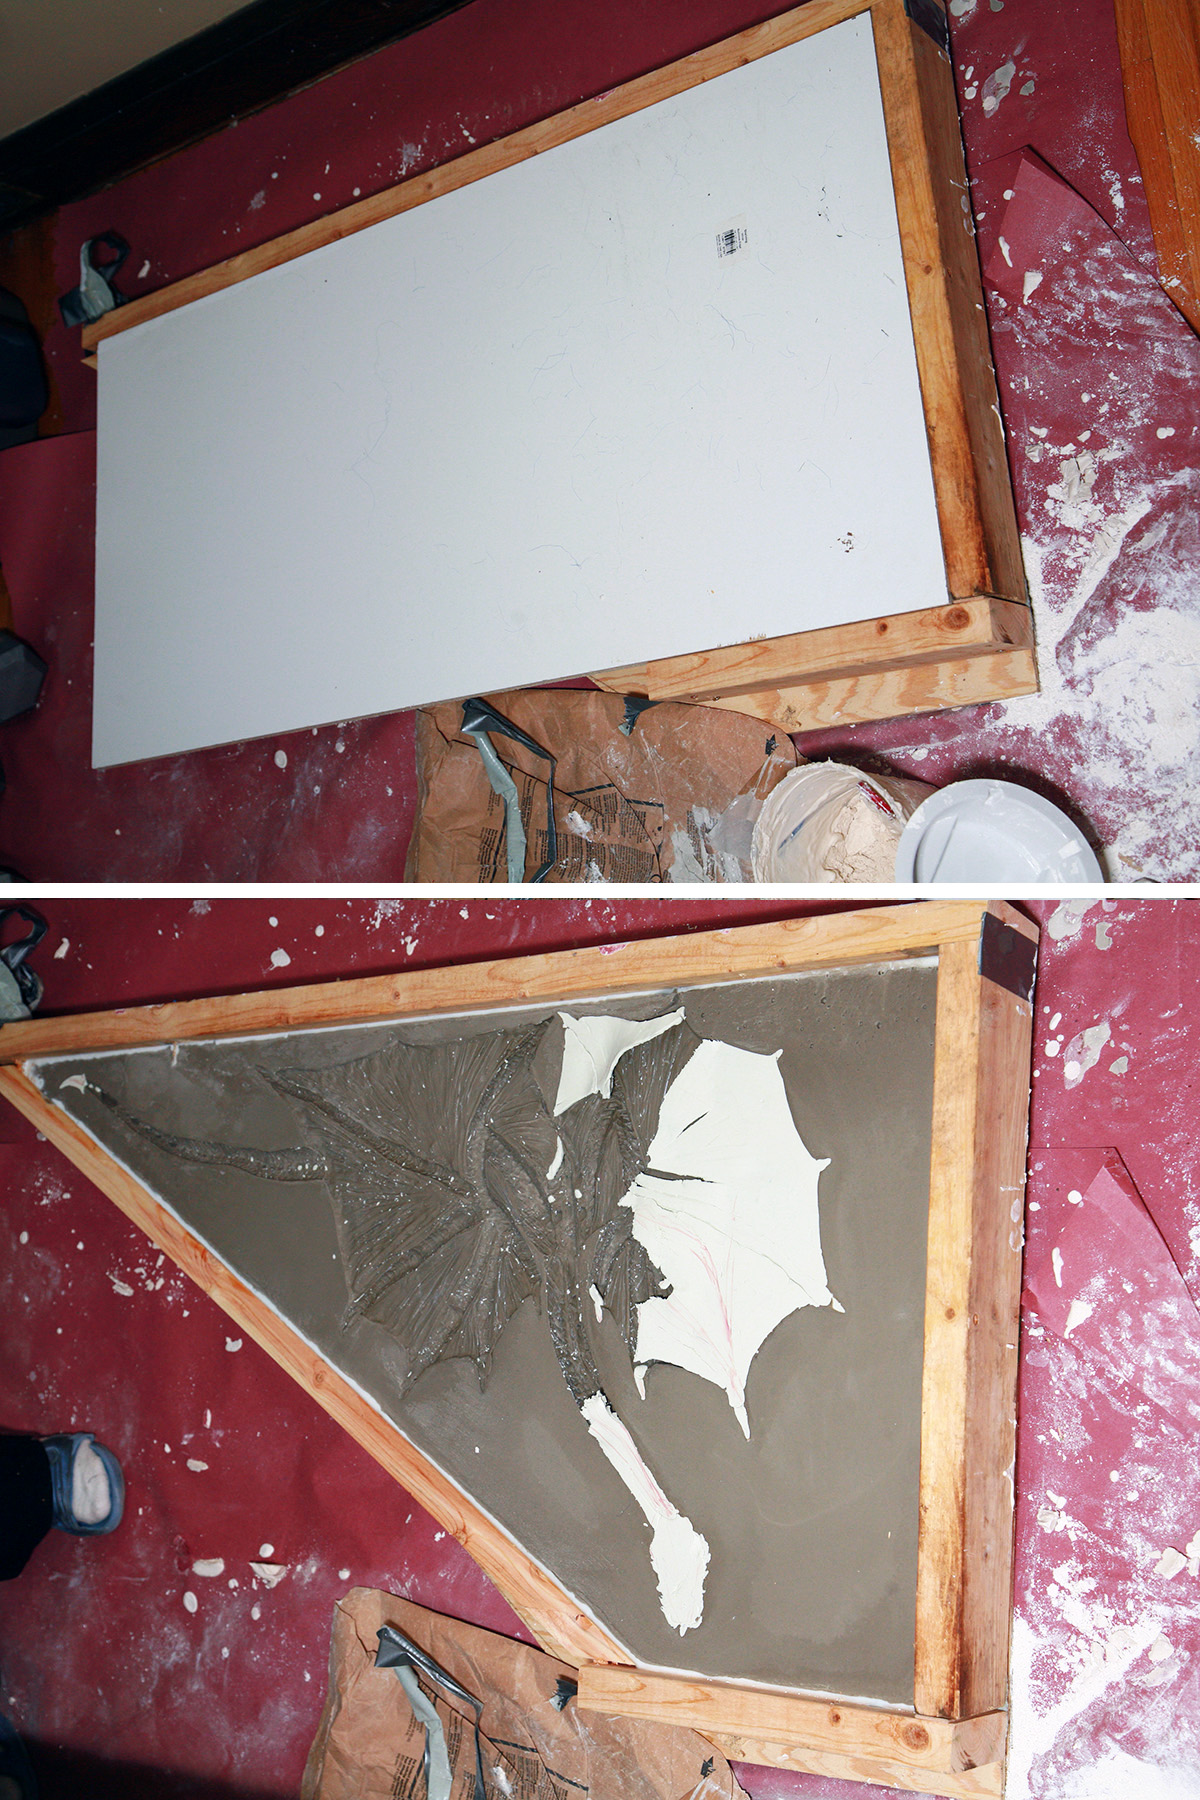 A two part compilation image showing the inverted mold with the white board on top, and then with the white board - and a fair amount of clay - removed.